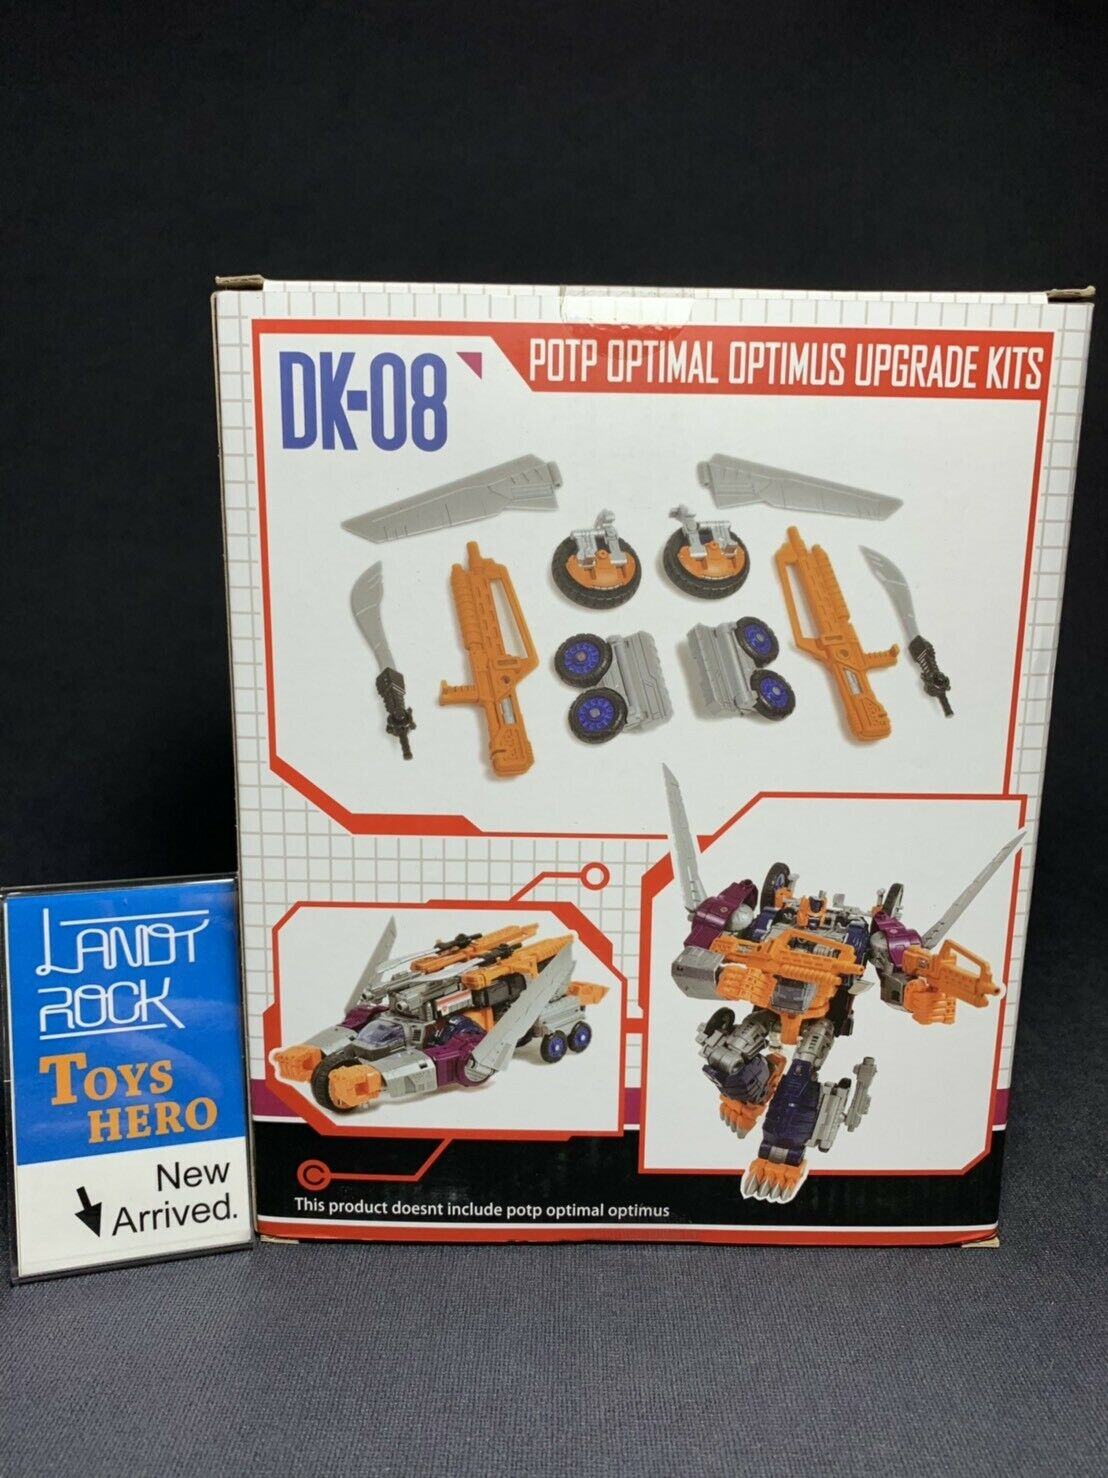 [Toys Hero] In Hand DNA DK-08 upgrade upgrade upgrade kit for POTP OPTIMUS 7d8bea